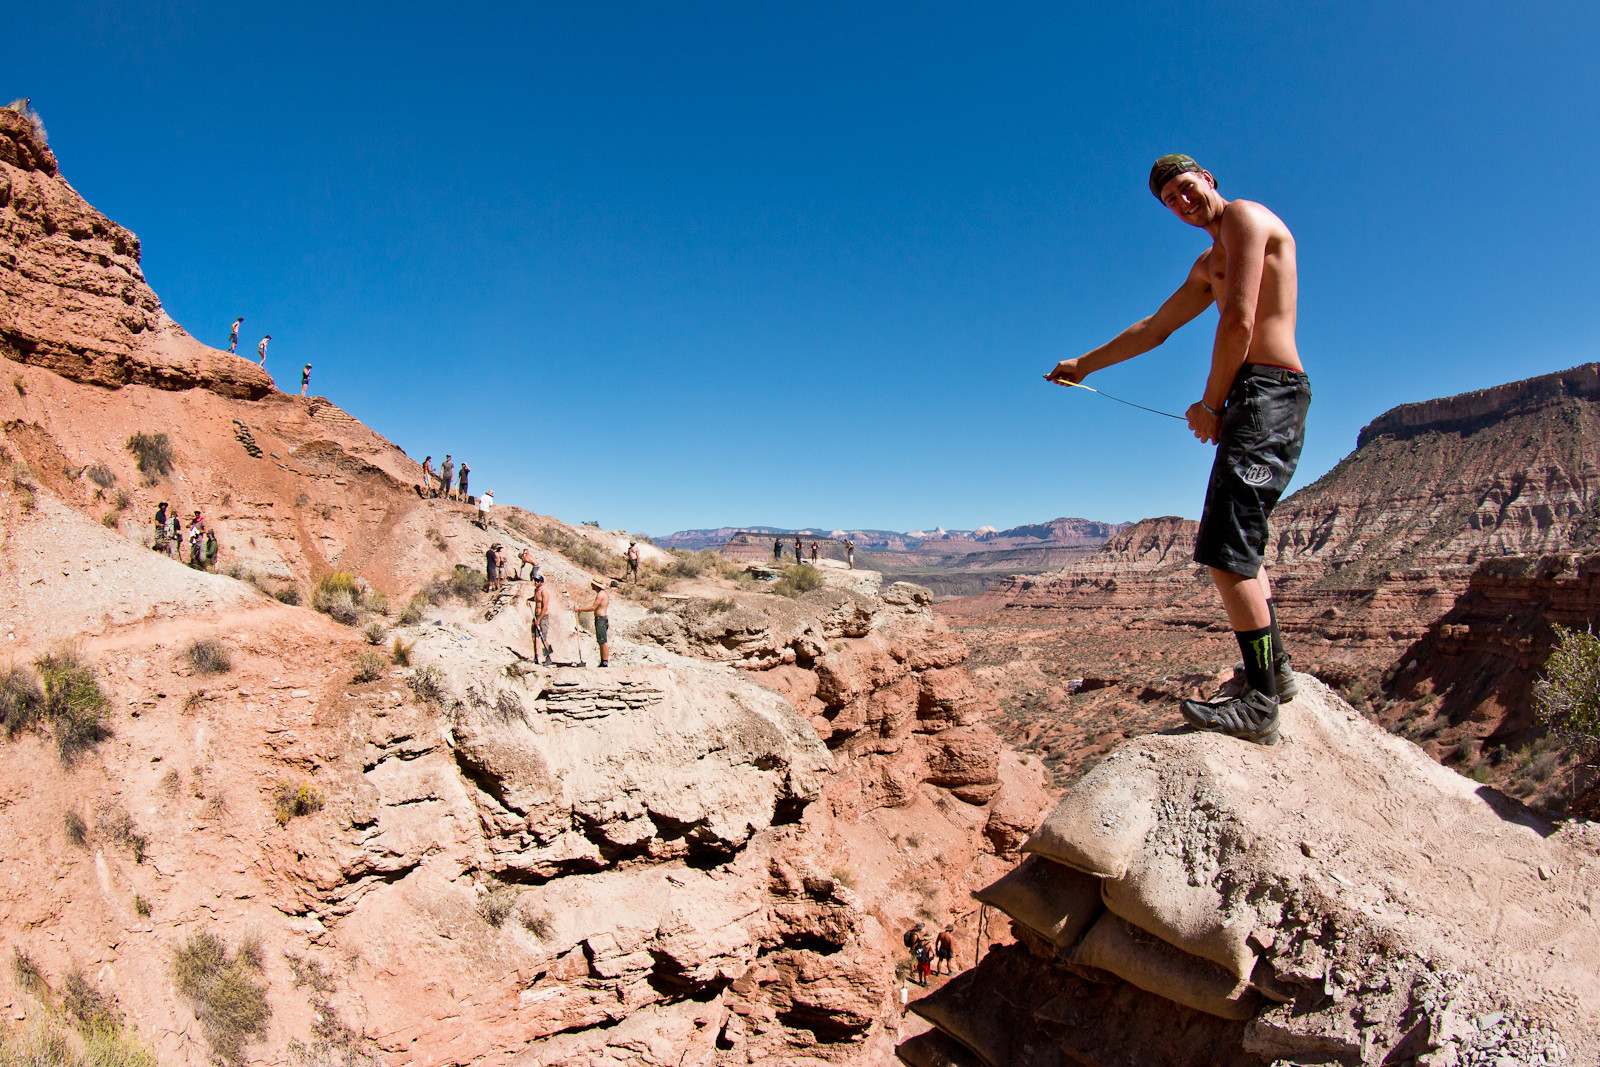 After reading Vital's How-to guide to jumping, Brendan Fairclough was this relaxed while measuring his 30 foot death canyon gap at Rampage. Remember, it's not the size of the jump, it's the style of the rider sending it.